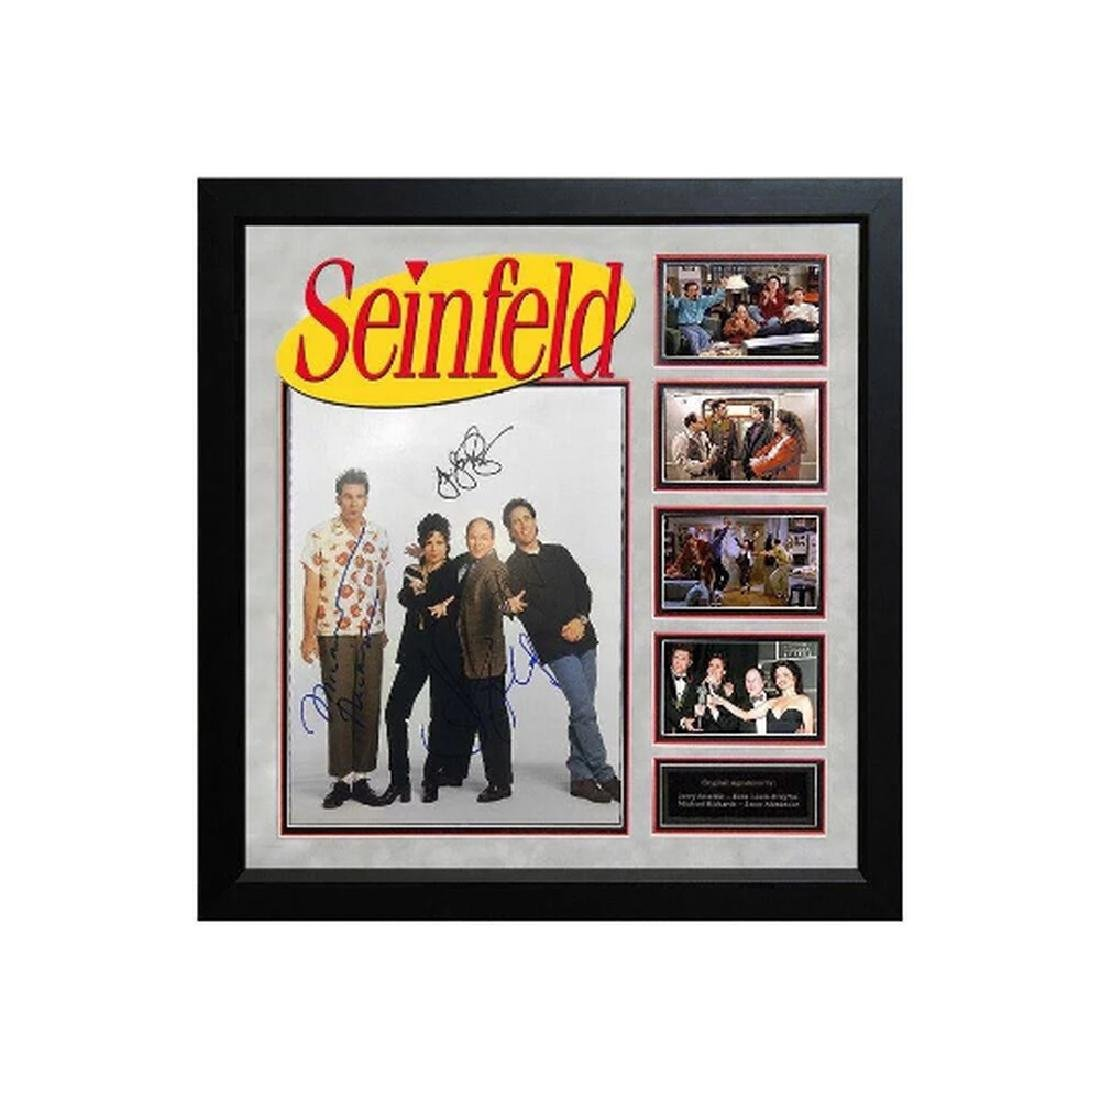 Seinfield - Signed by Cast - Custom Framed Photo